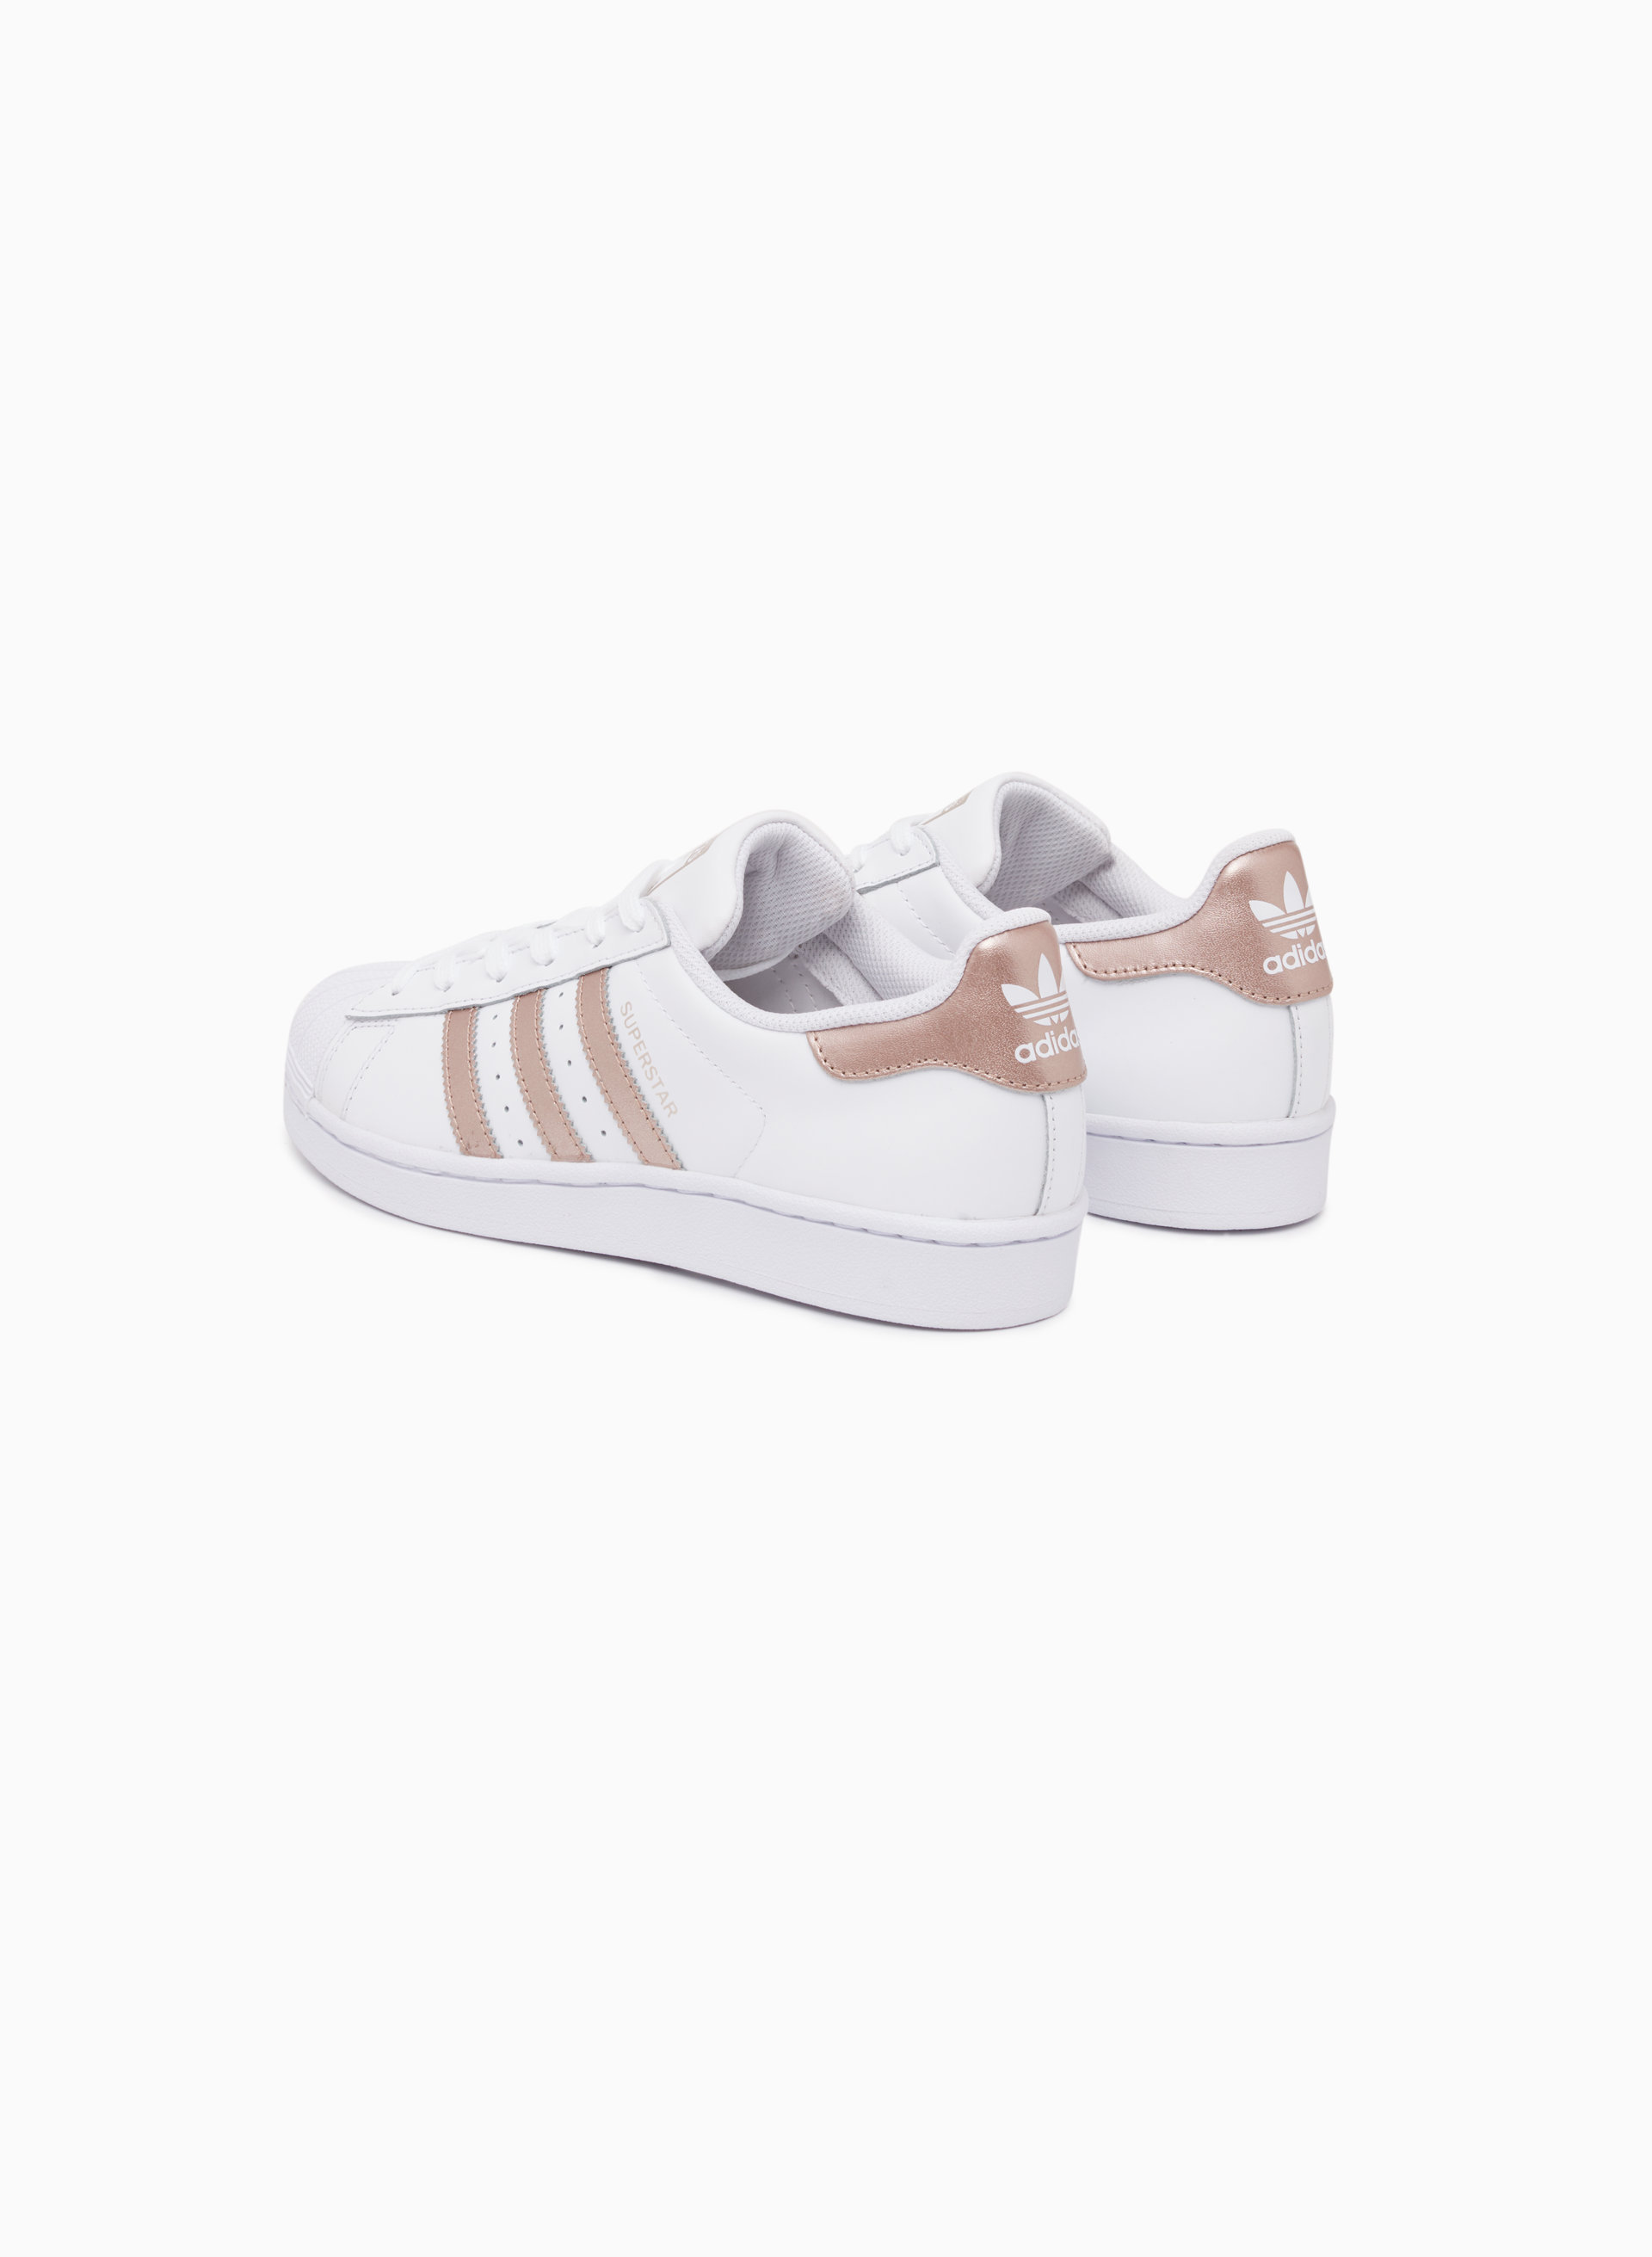 Cheap Adidas Womens Superstar Sneakers in Black Pink & Blue Leather